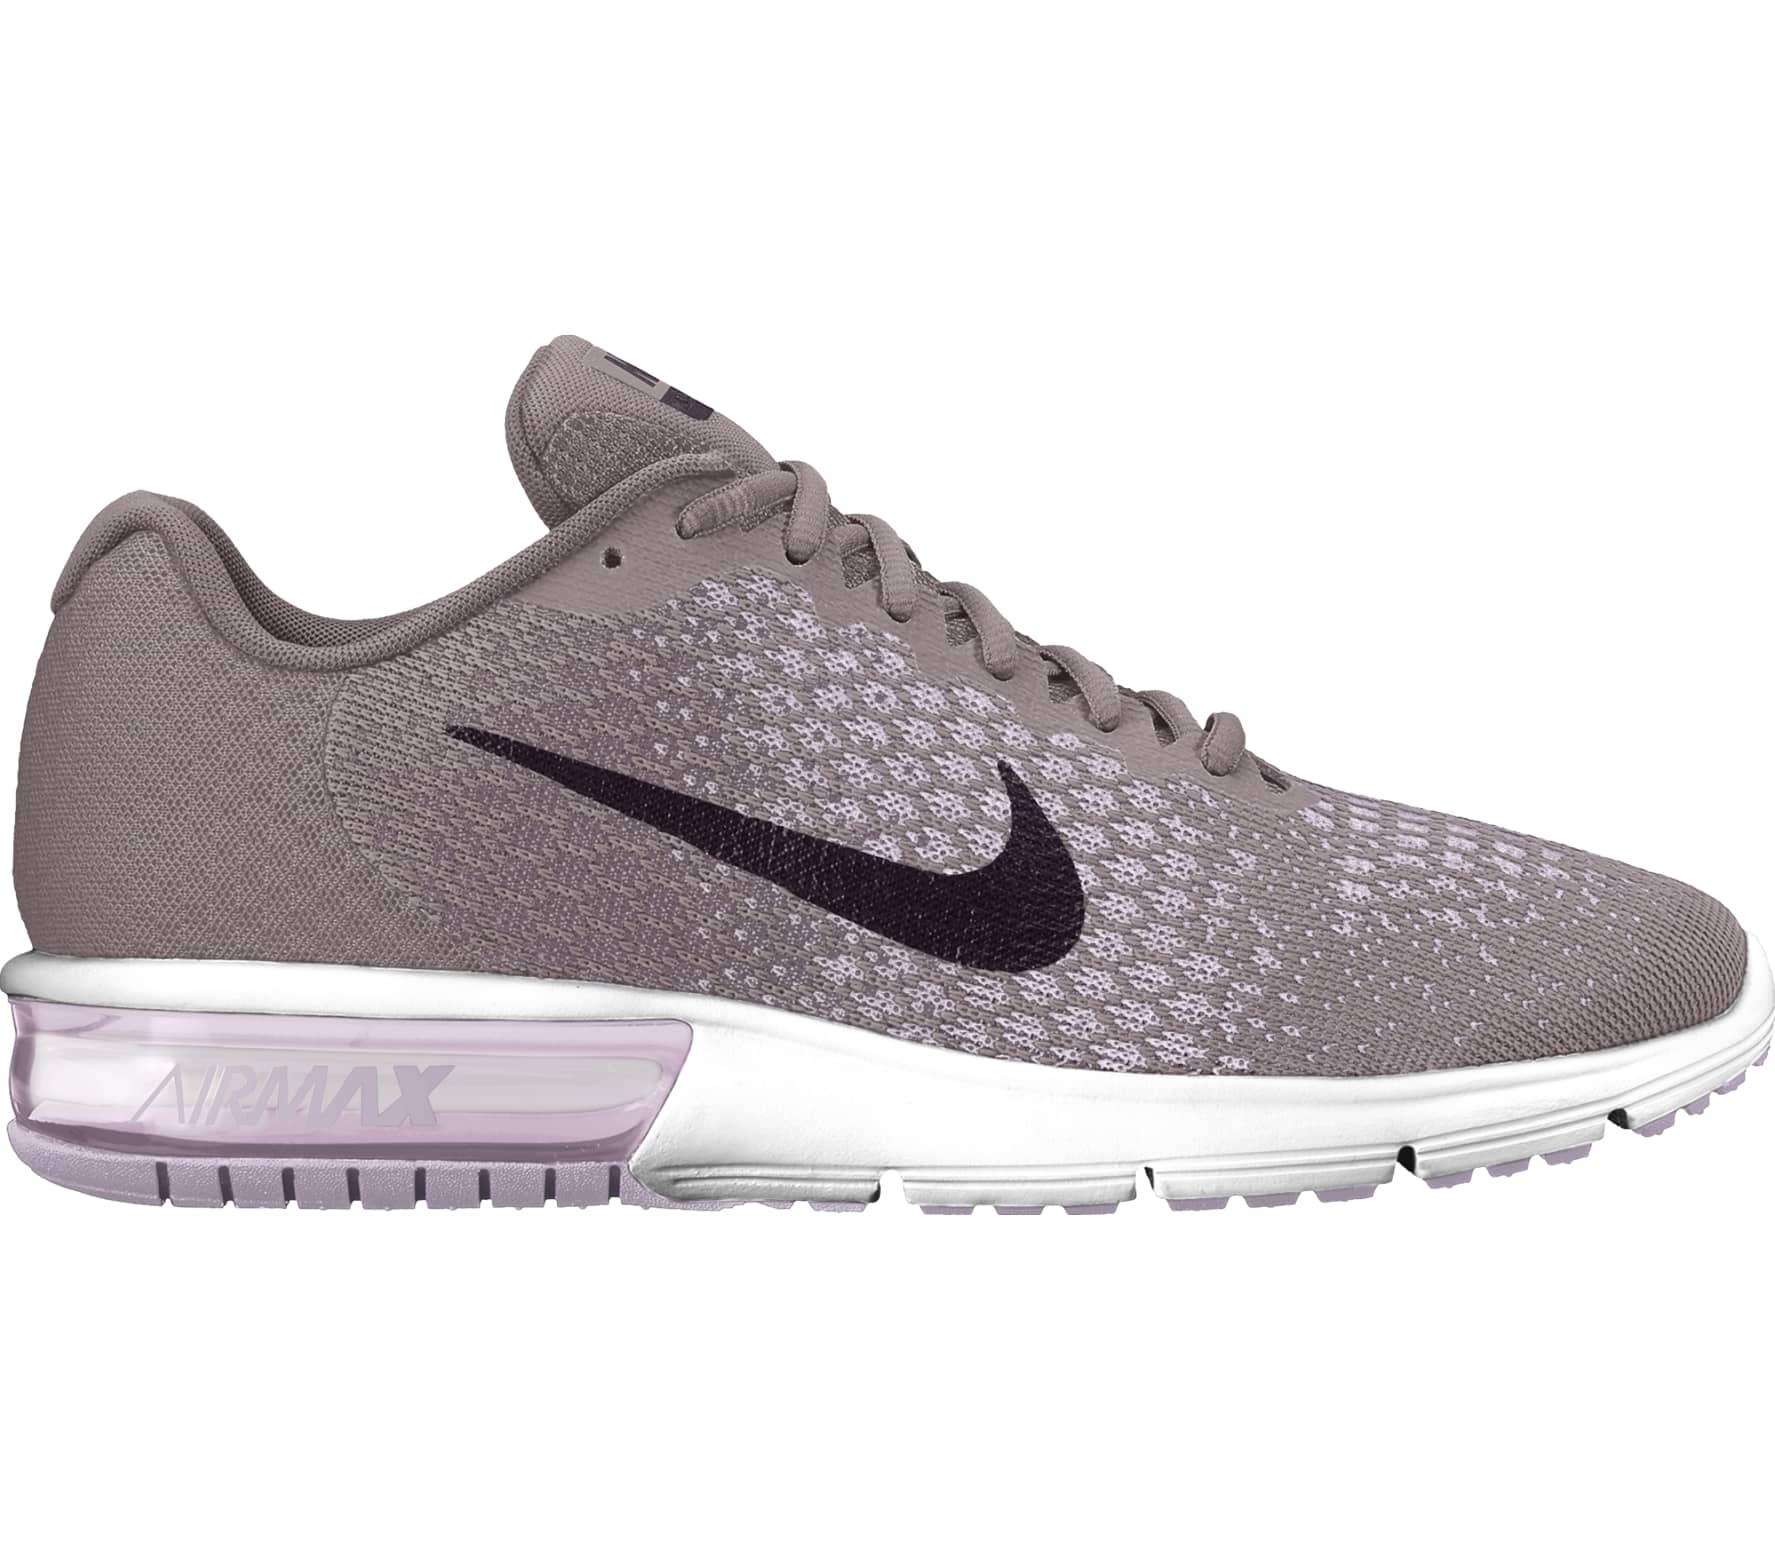 detailed look 259bd bfe0d Nike - Air Max Sequent 2 Mujer Zapatos para correr (marrón)